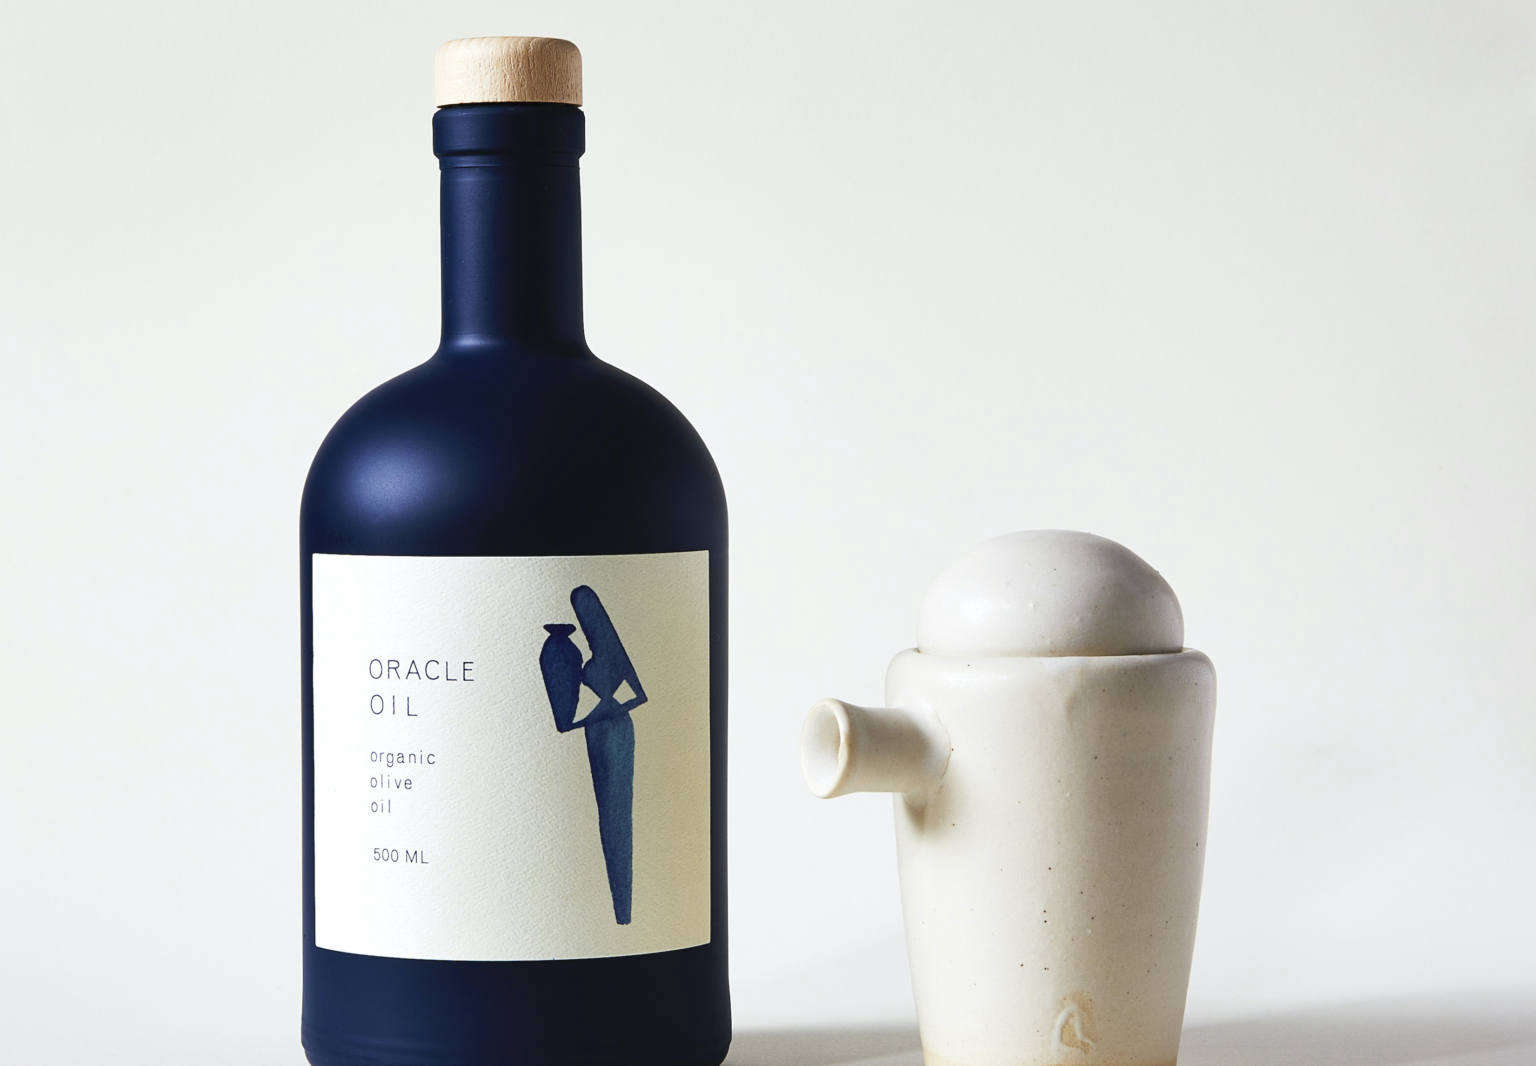 oracle olive oil and decanter 2